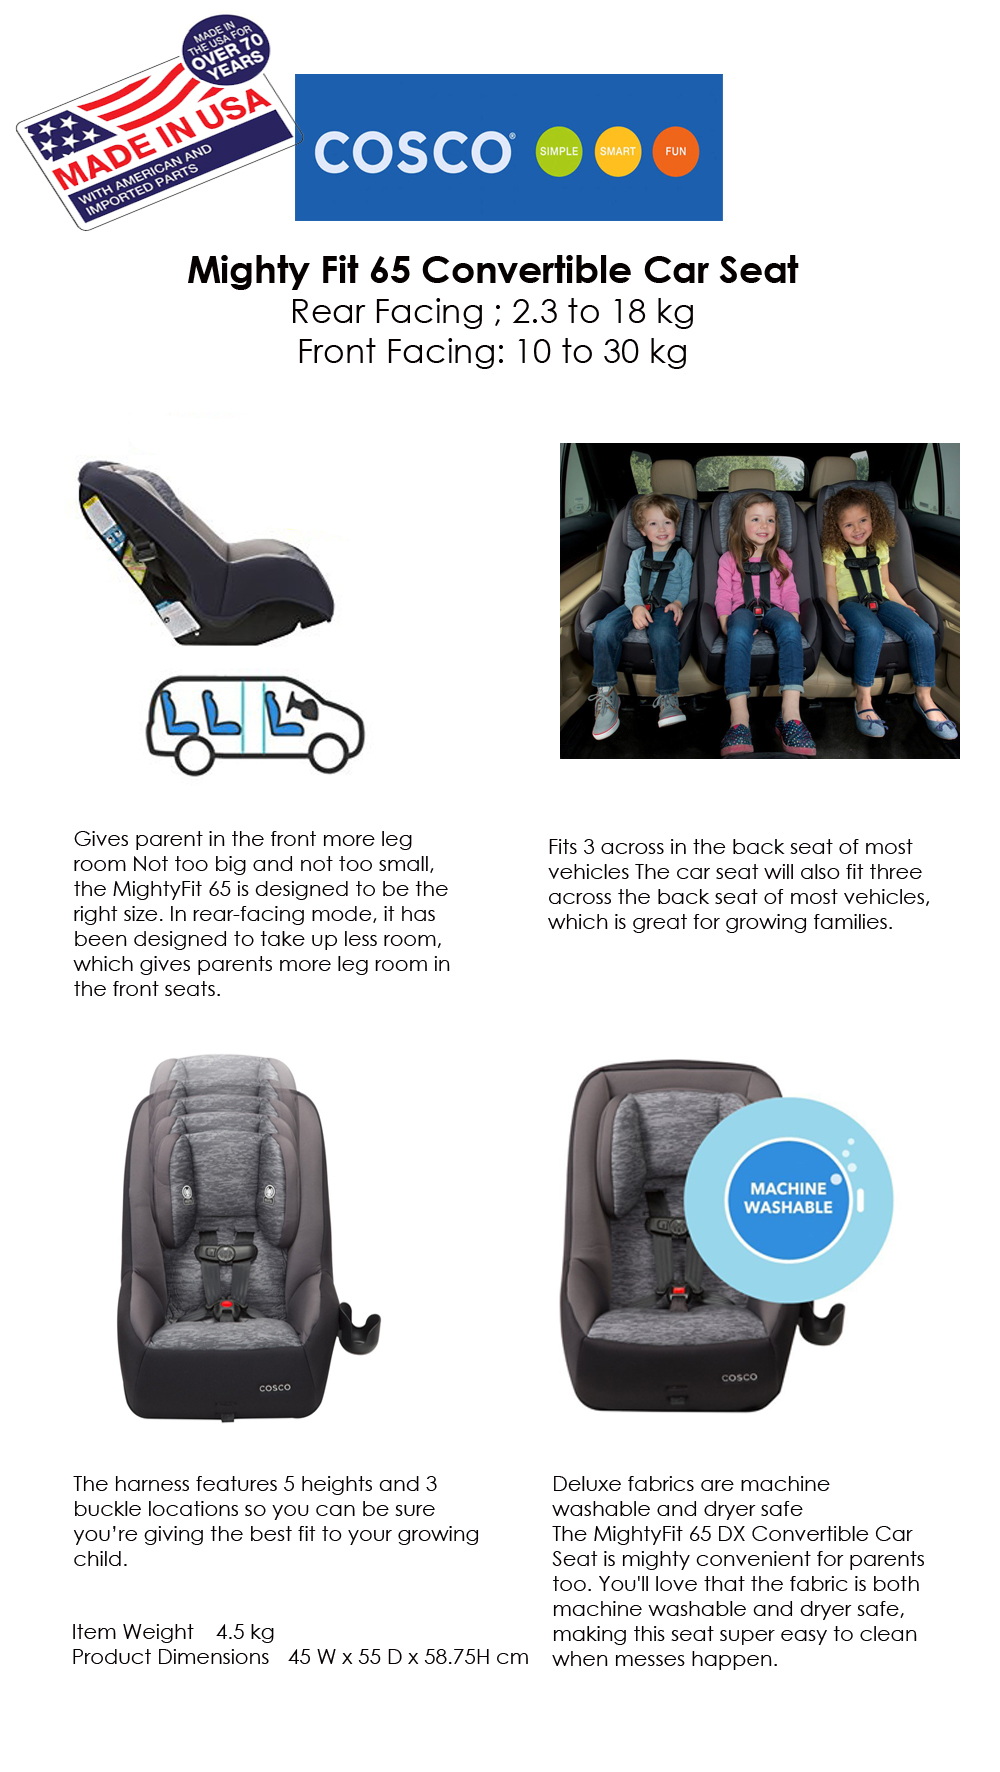 COSCO MIGHTY 65 DELUXE CONVERTIBLE CAR SEAT